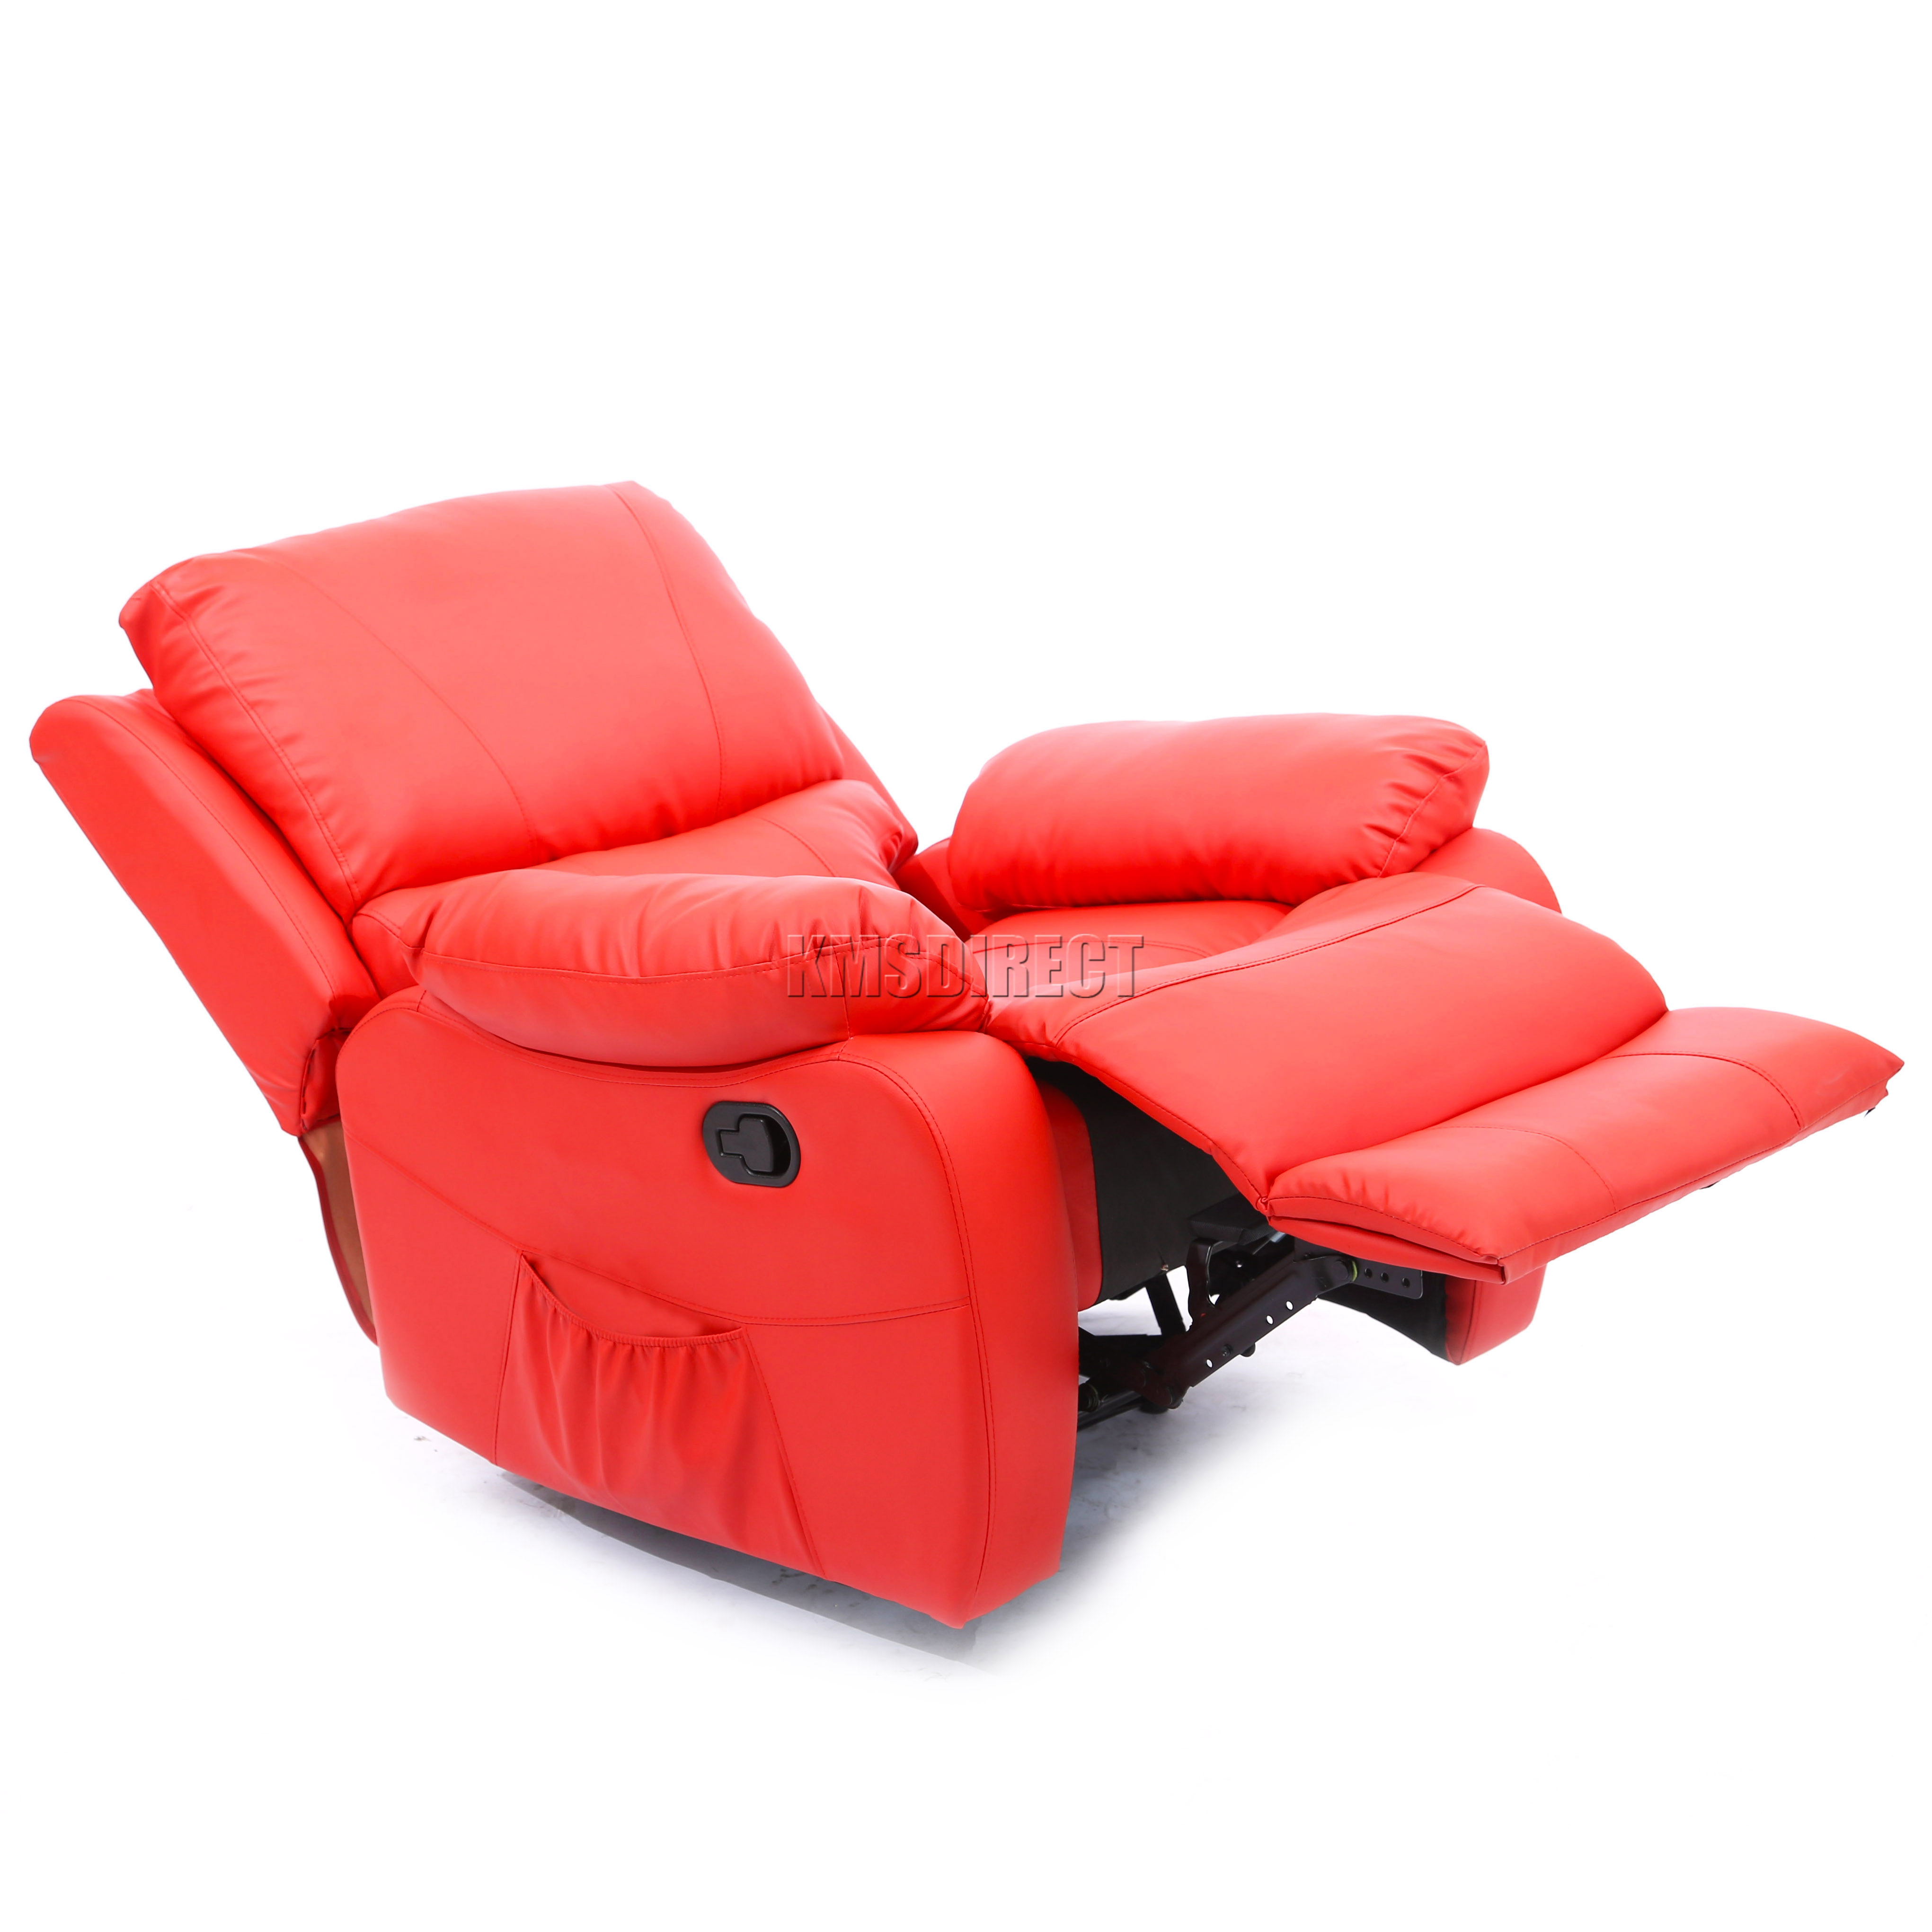 FoxHunter Luxury 1 Seater Leather Cinema Recliner Sofa Chair